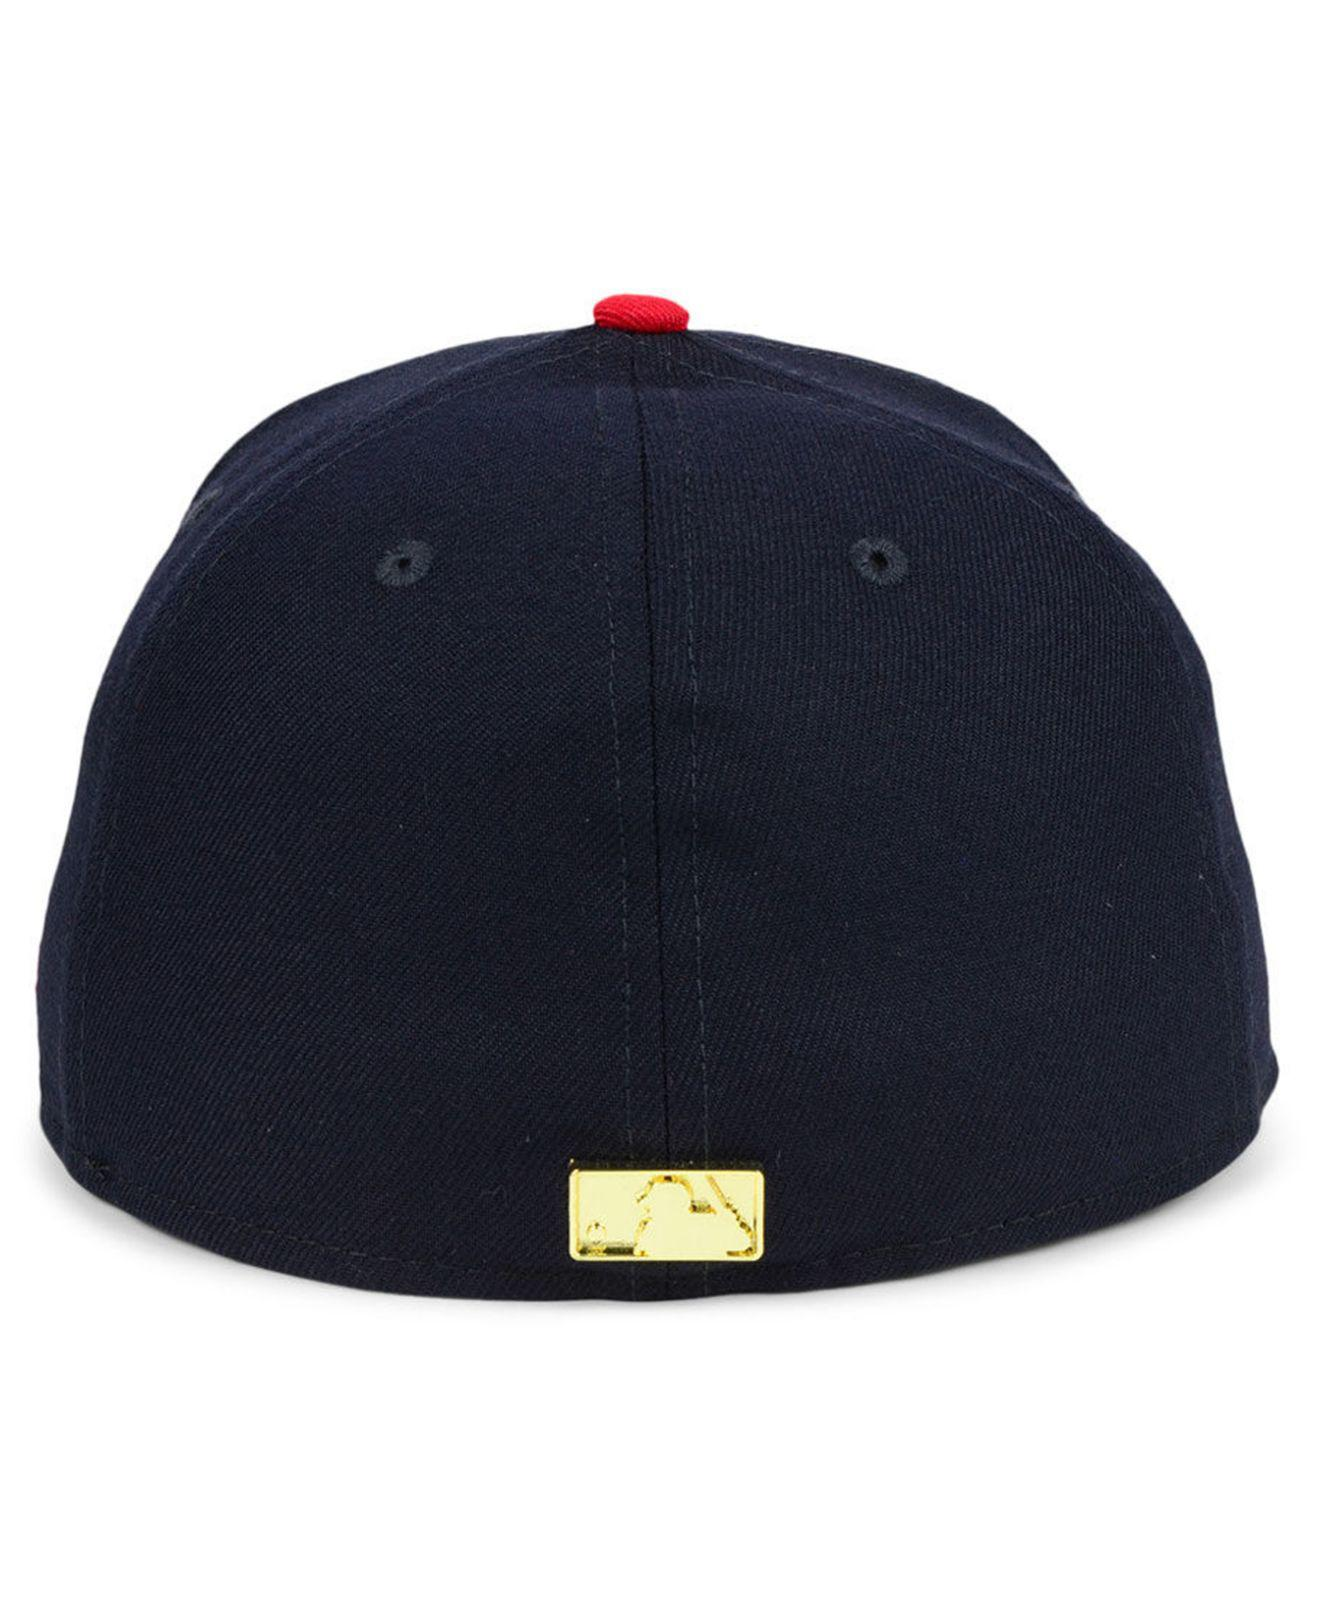 official photos 5a9c5 5aca0 promo code for lyst ktz boston red sox golden finish 59fifty fitted cap in  blue 8e3b8